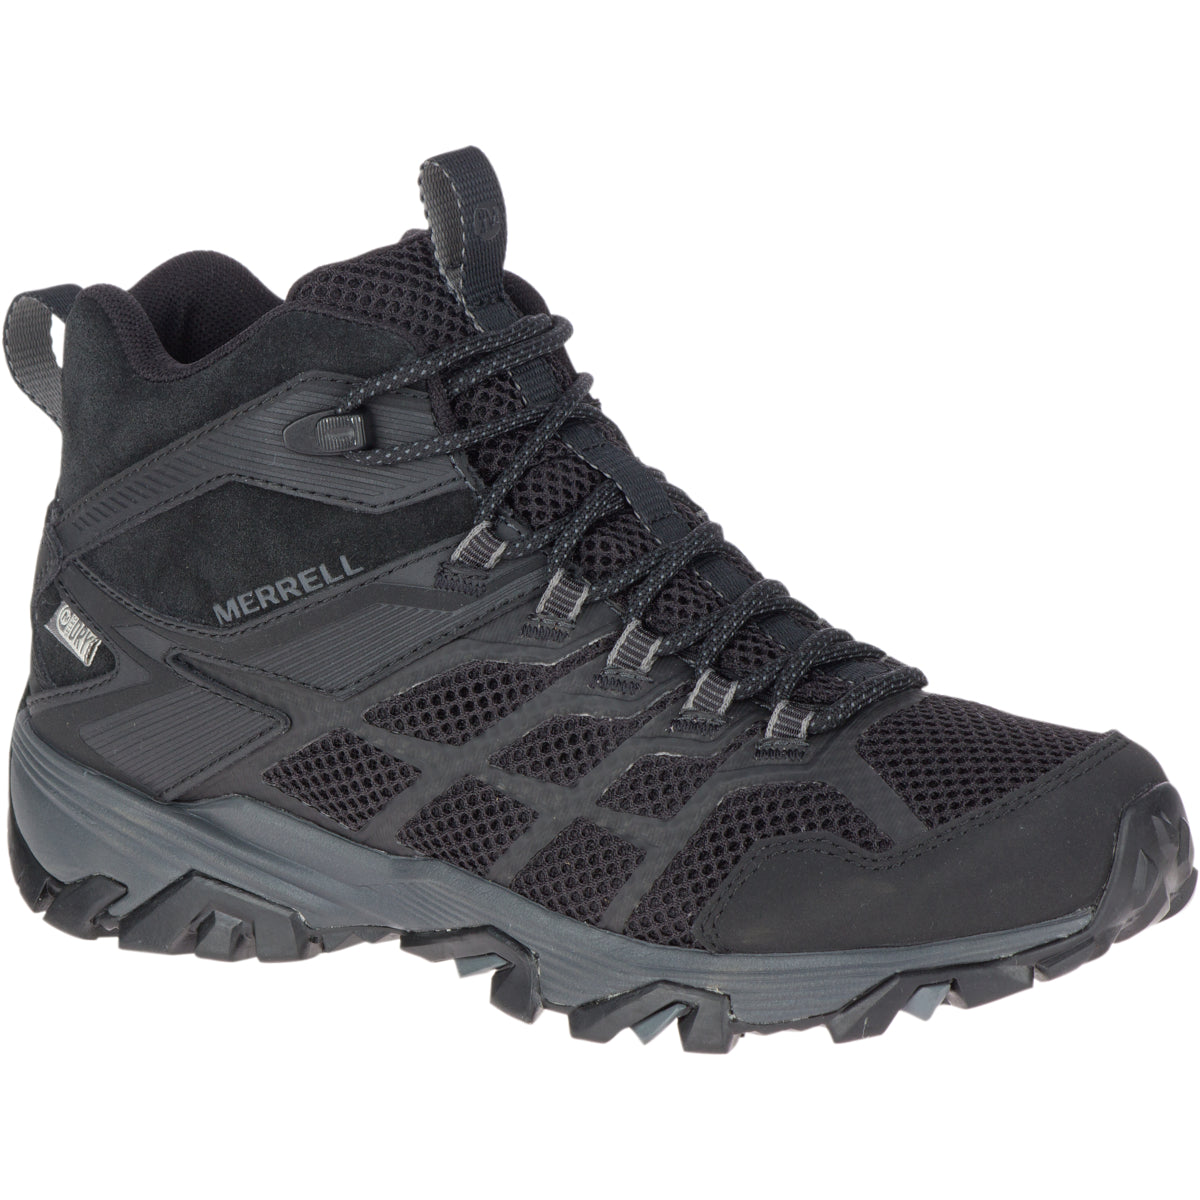 Merrell Men's Moab FST Ice + Thermo